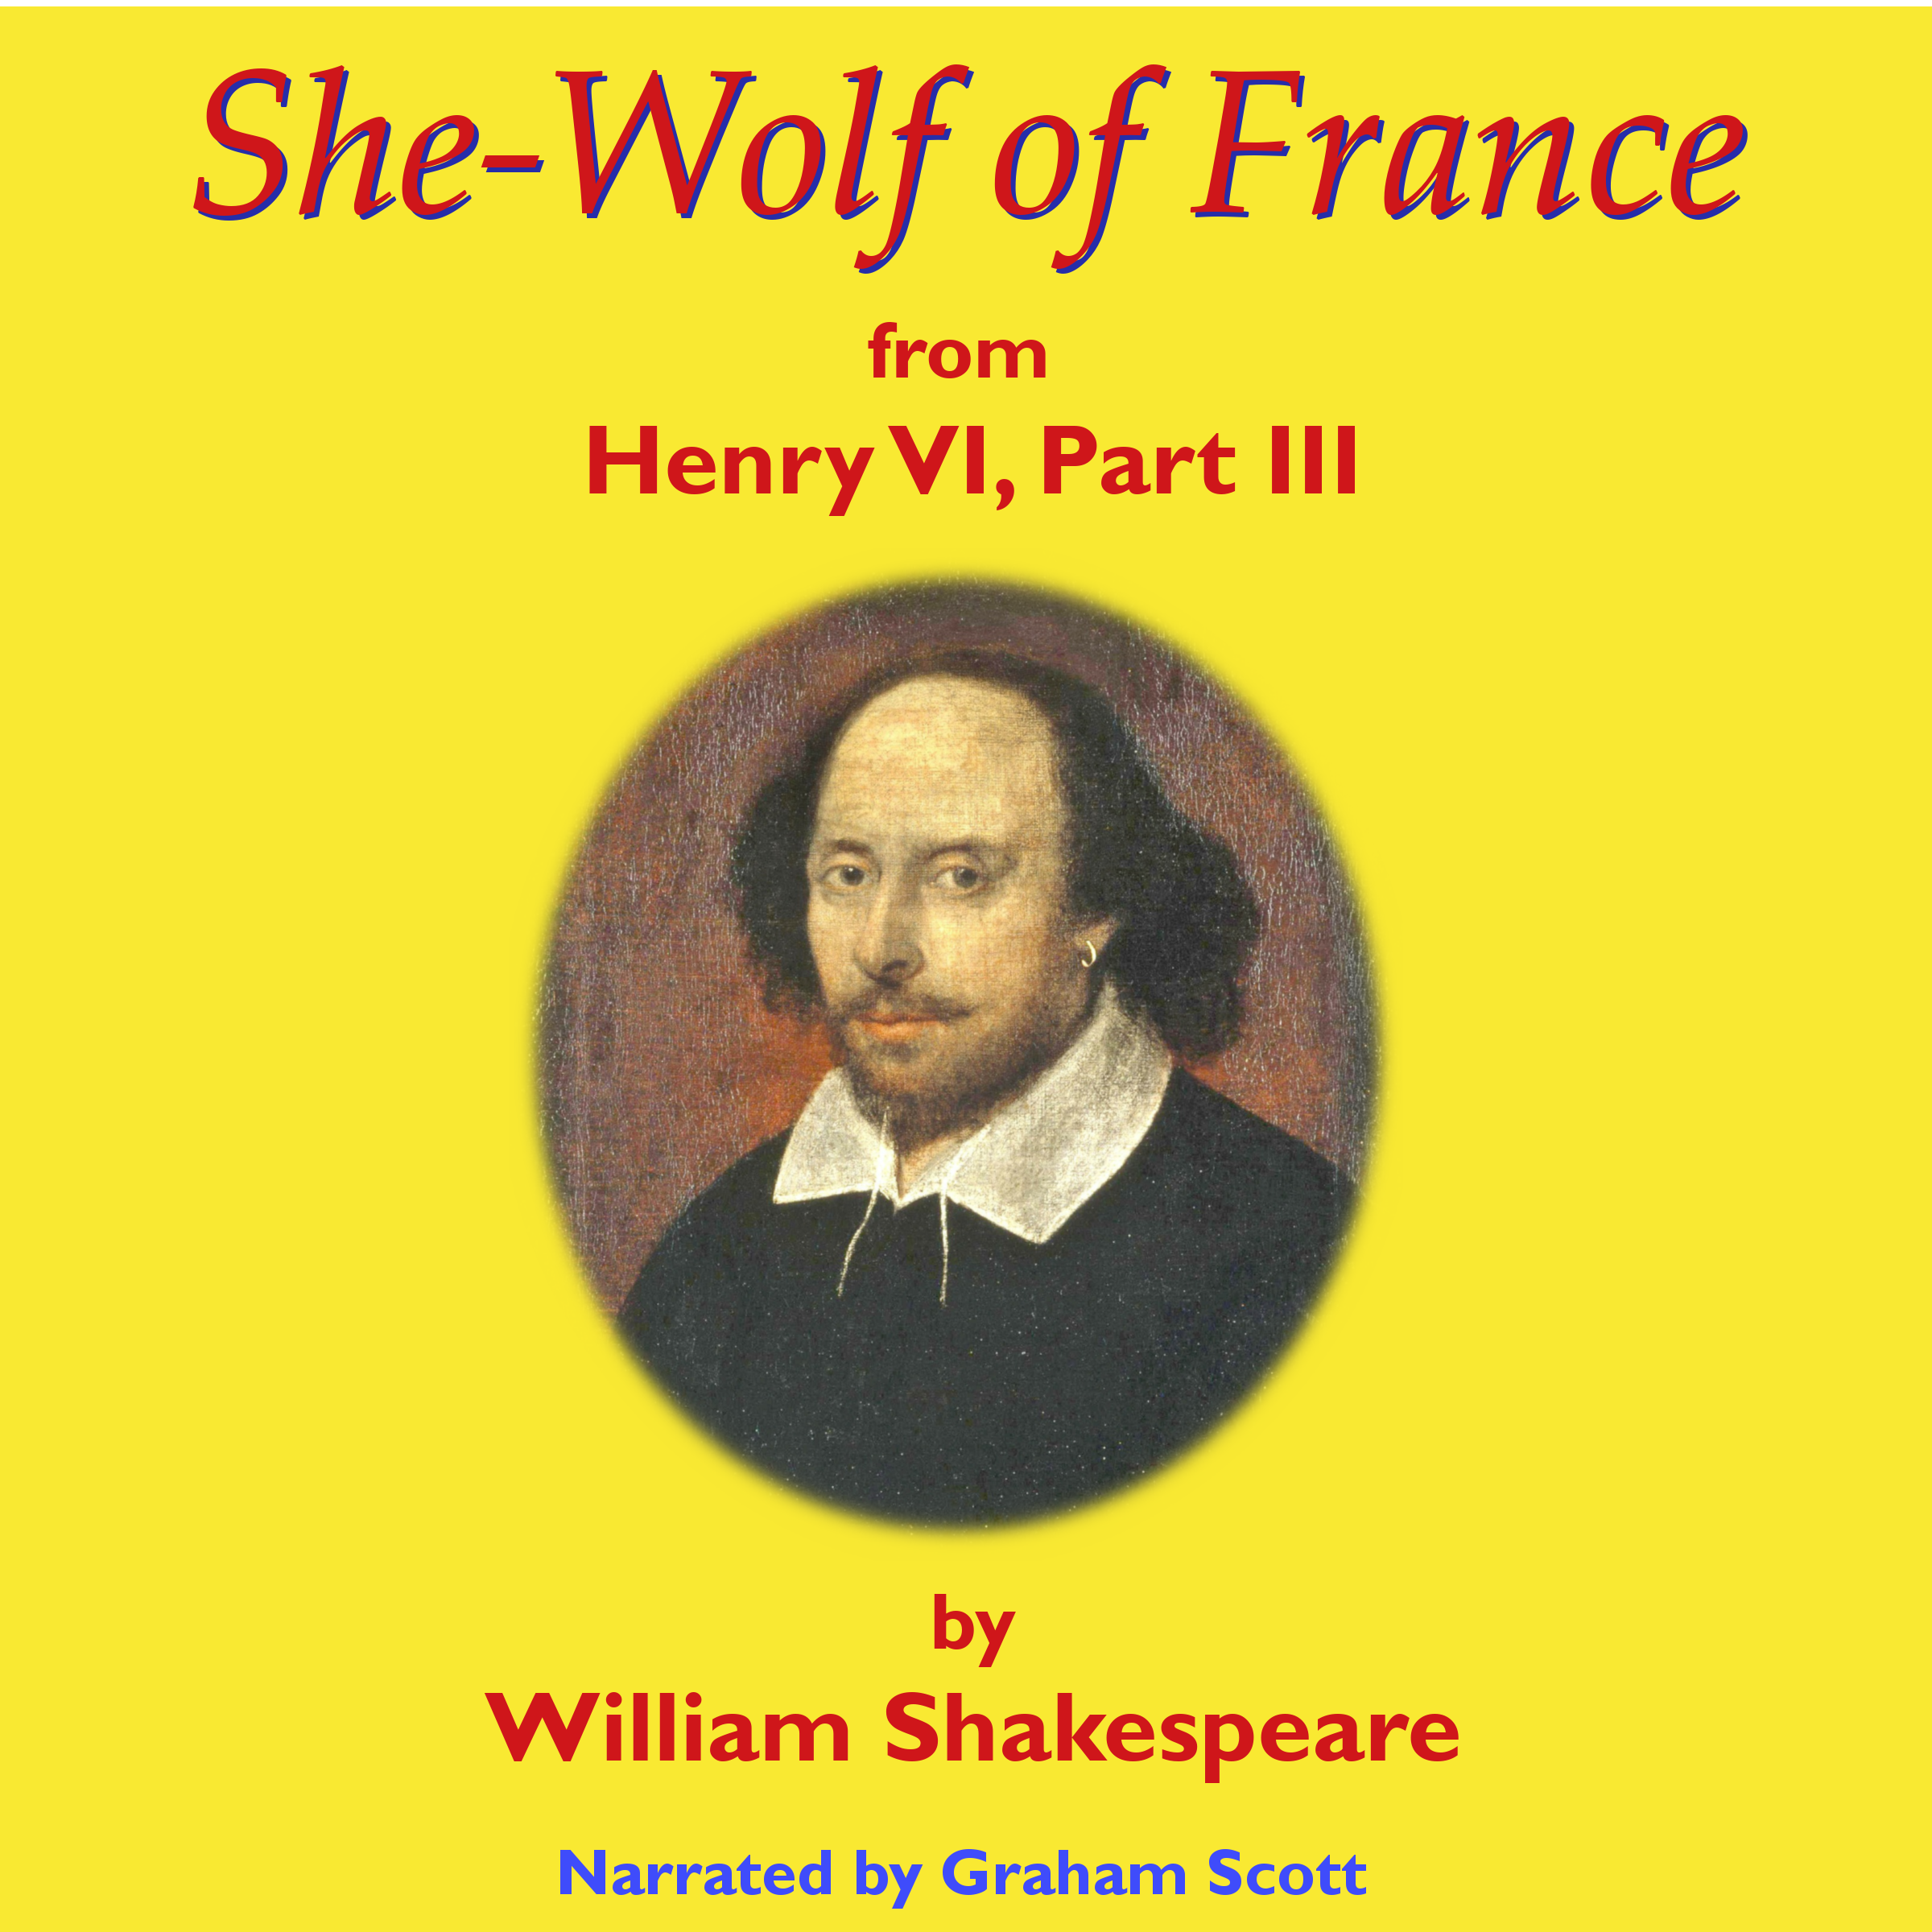 She-wolf of France